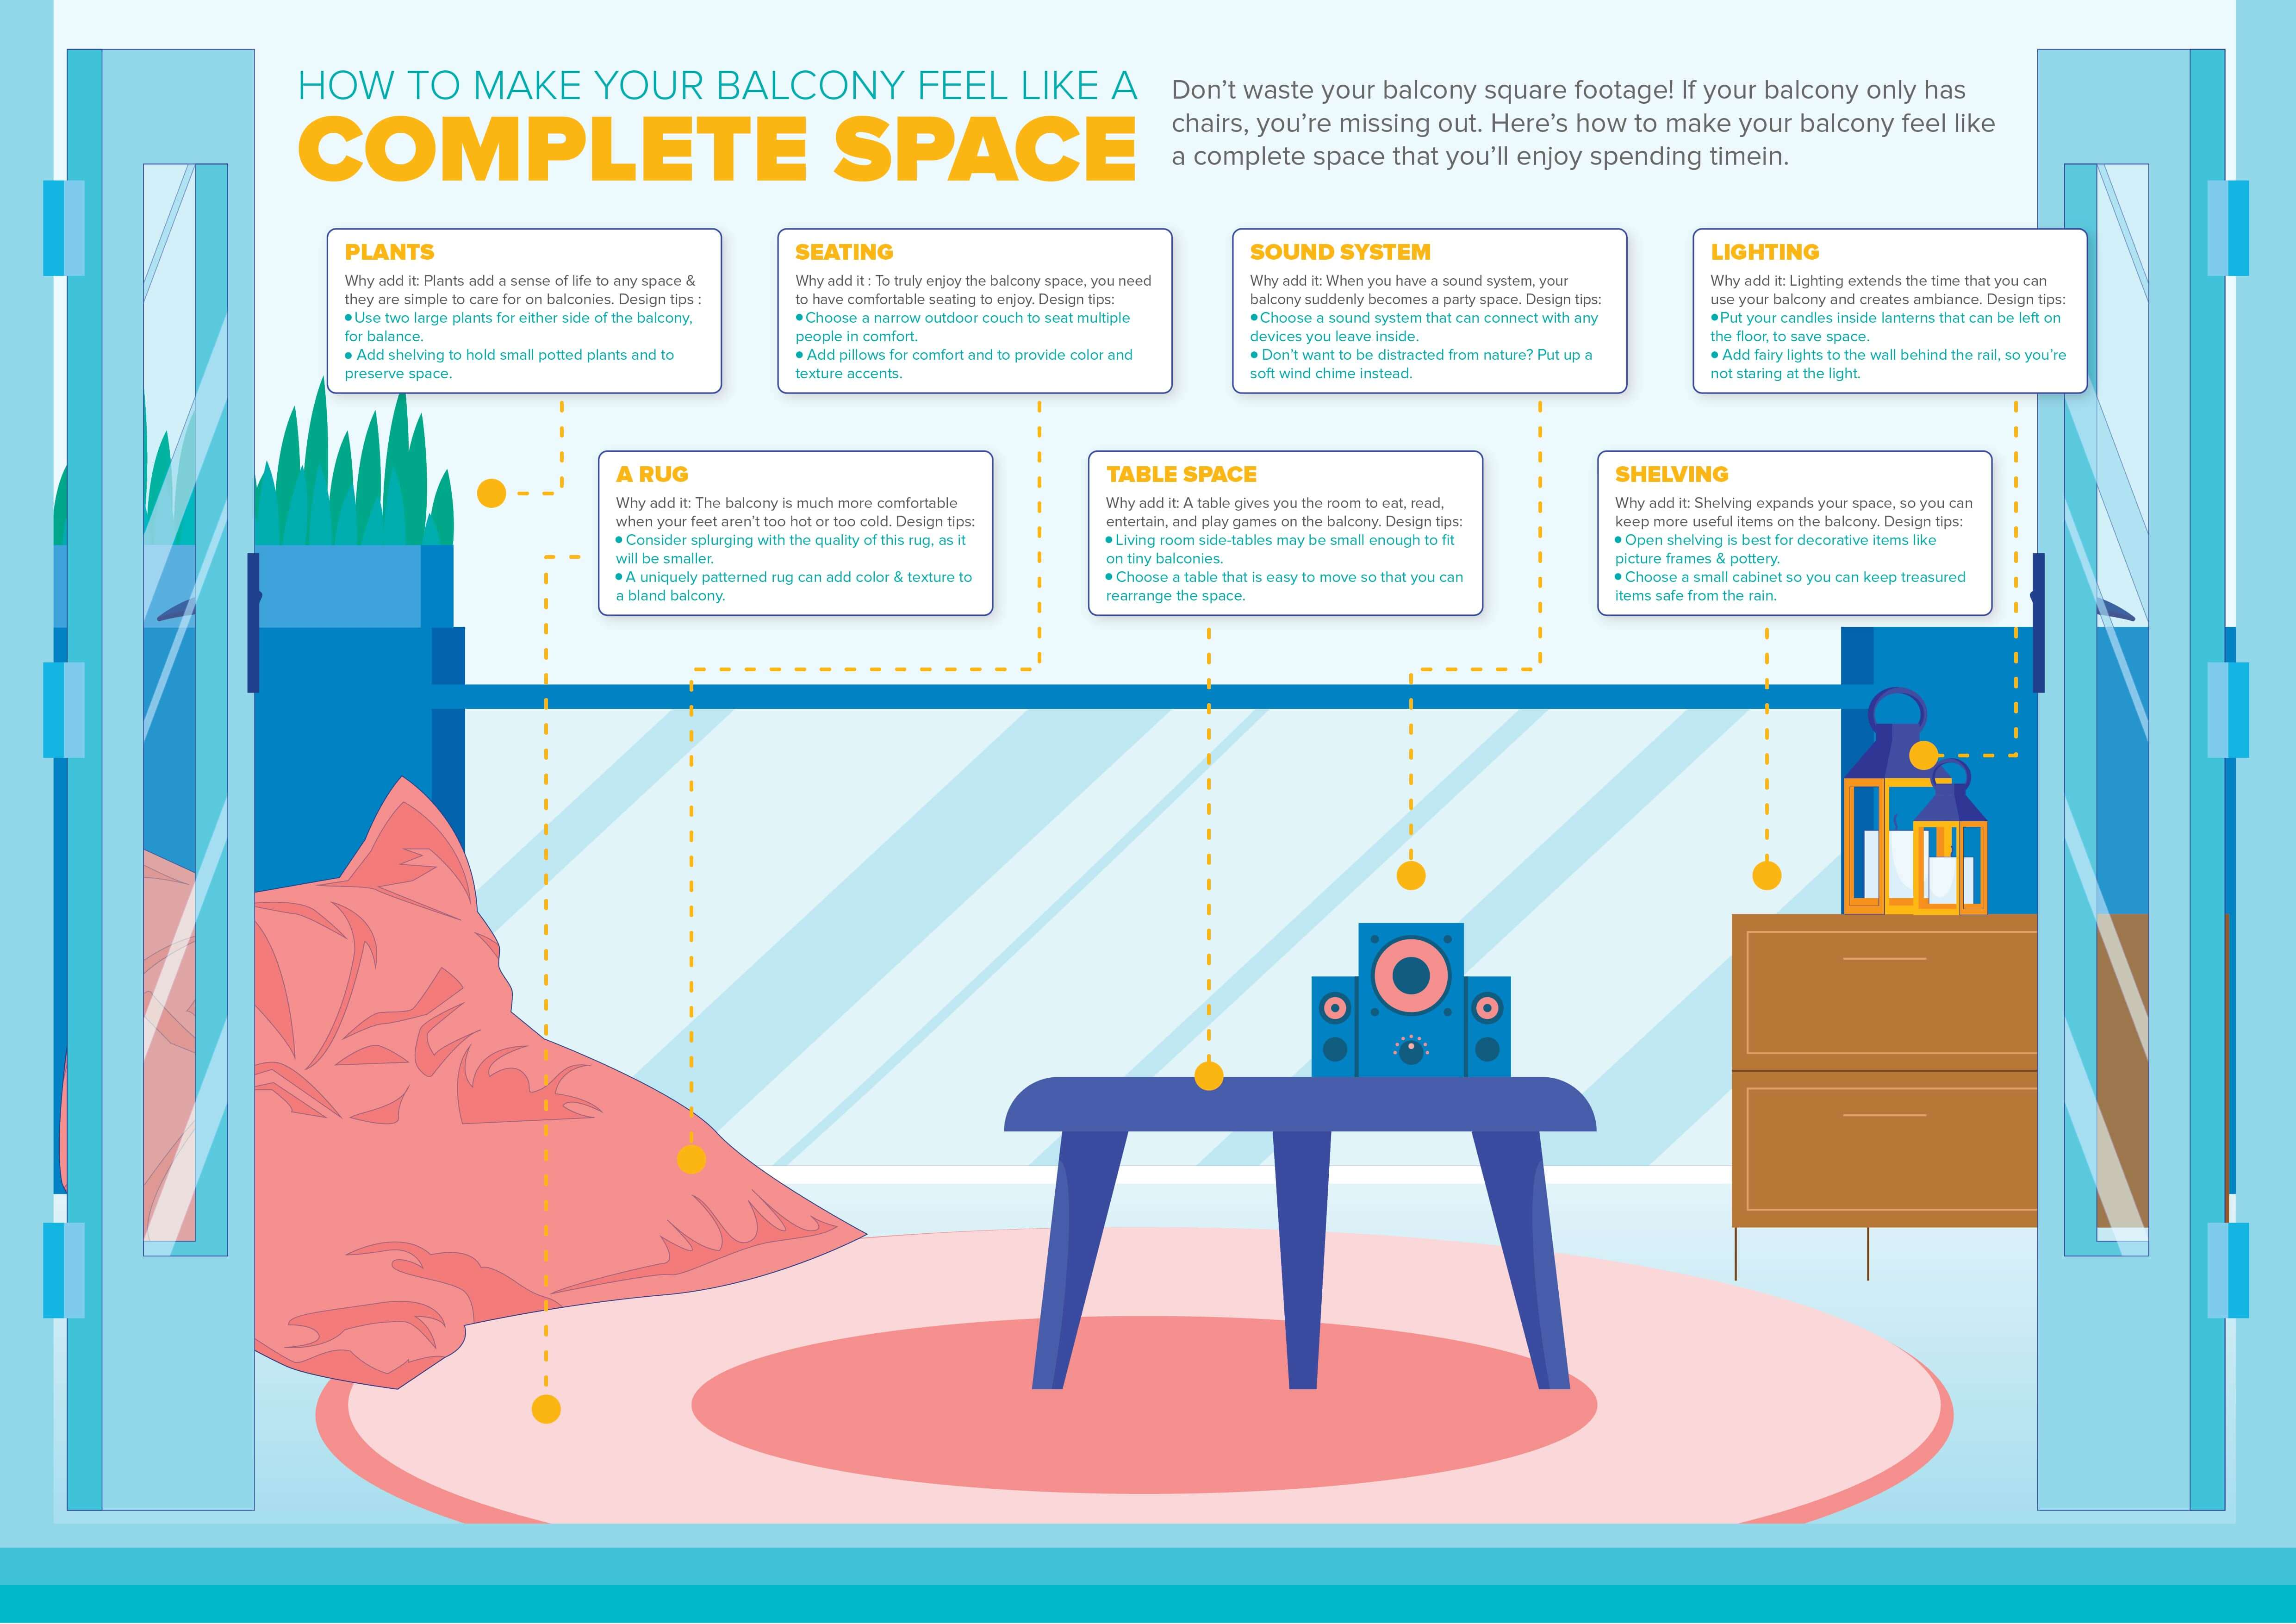 How-to-Make-Your-Balcony-Feel-like-Complete-Space-infographic-plaza